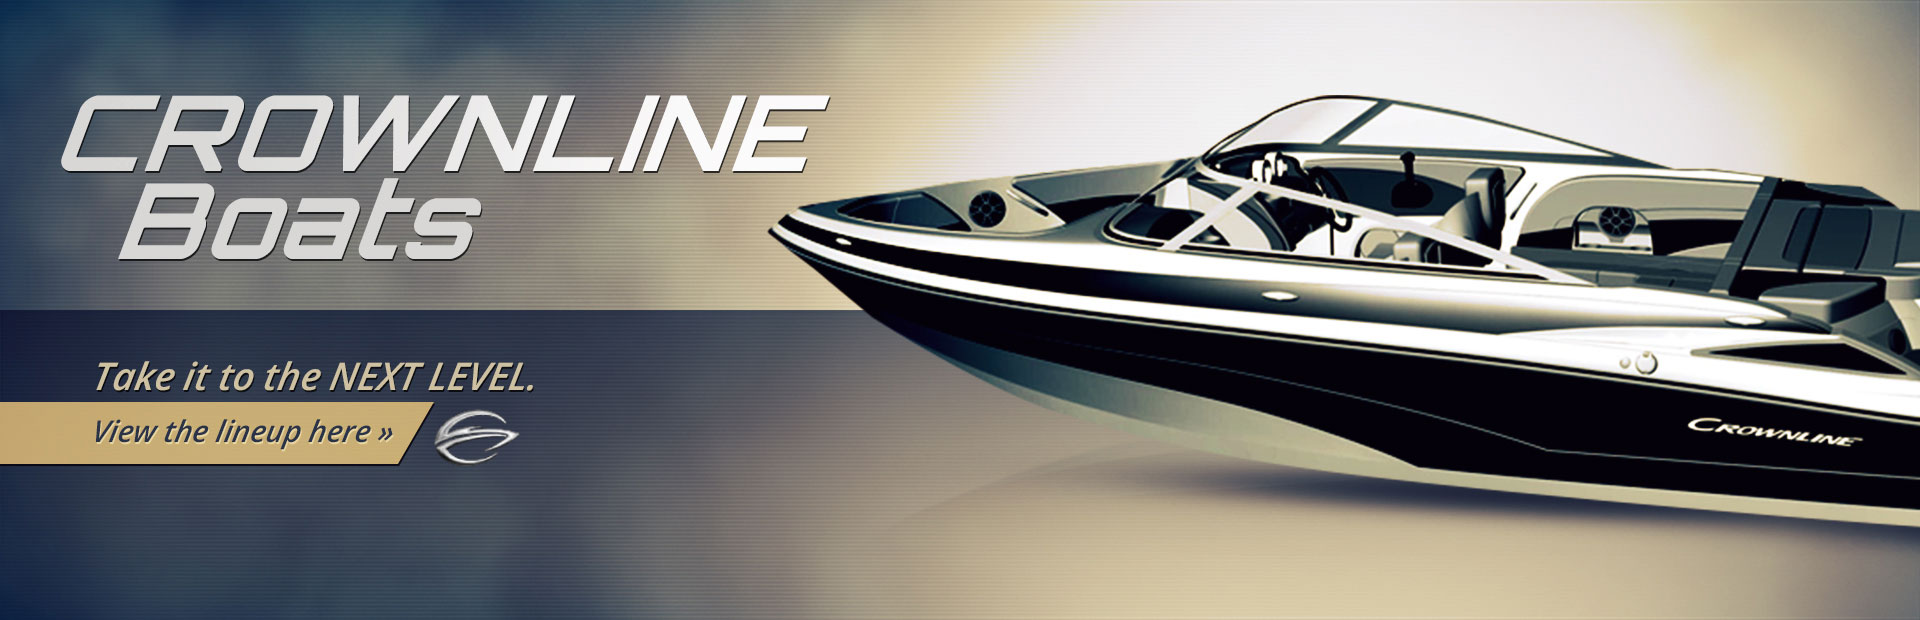 hight resolution of crownline boats click here to view the models